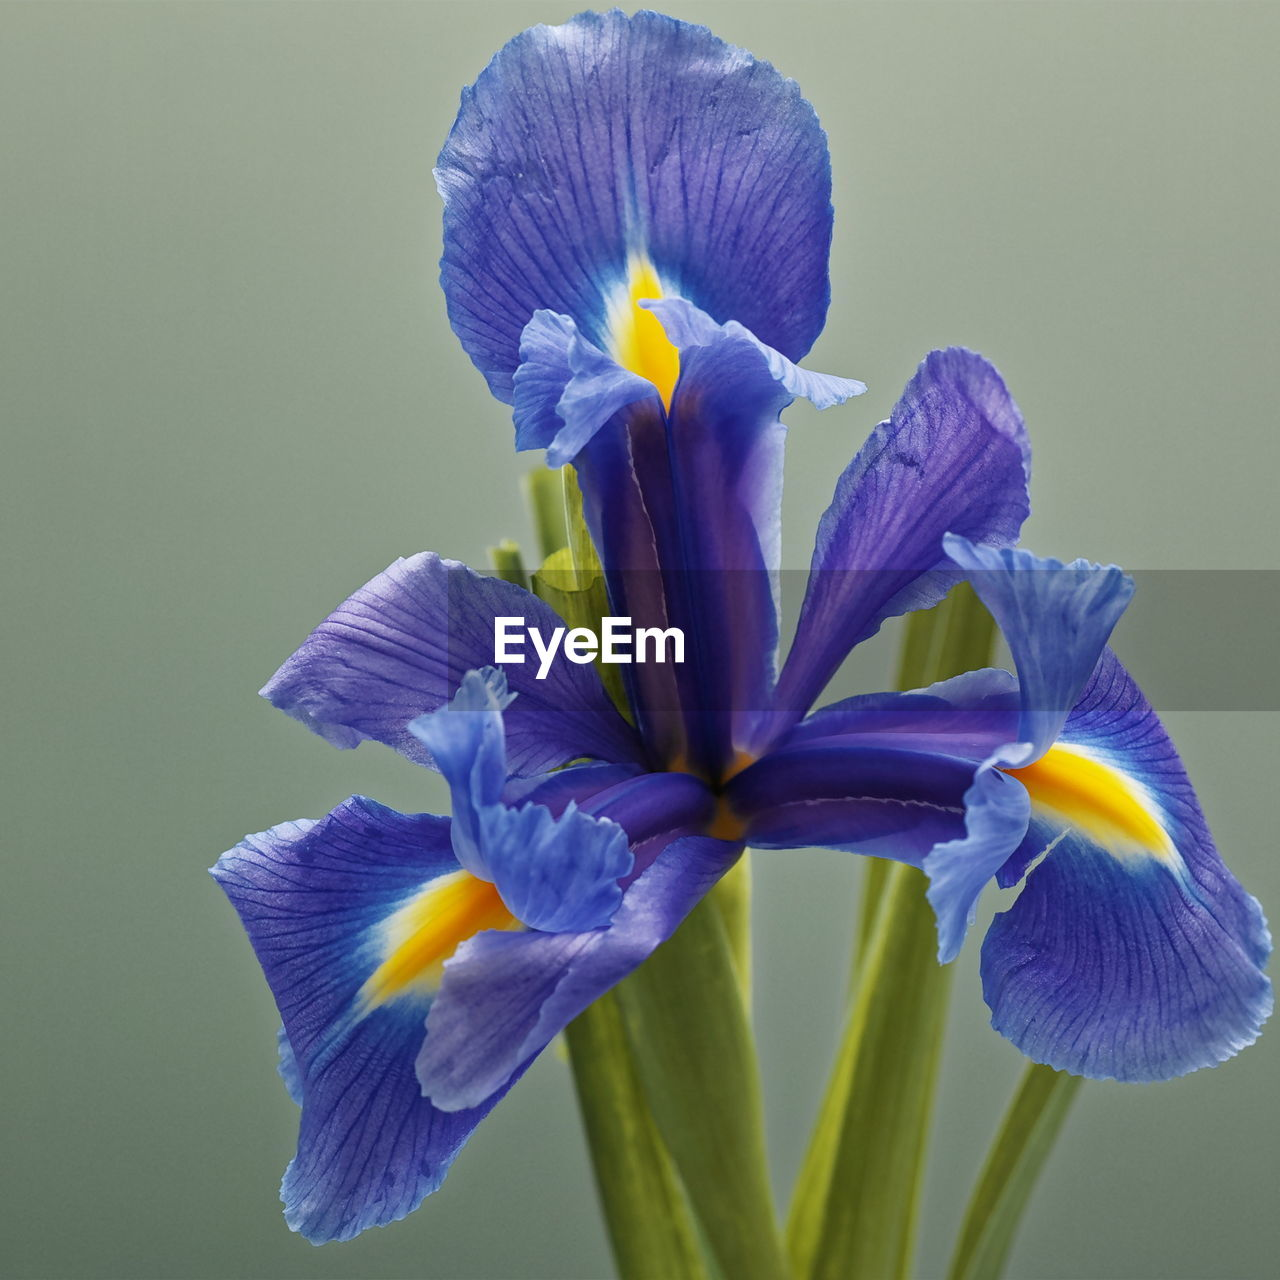 flower, petal, beauty in nature, fragility, flower head, purple, freshness, nature, growth, no people, close-up, iris - plant, studio shot, plant, yellow, blue, day, blooming, outdoors